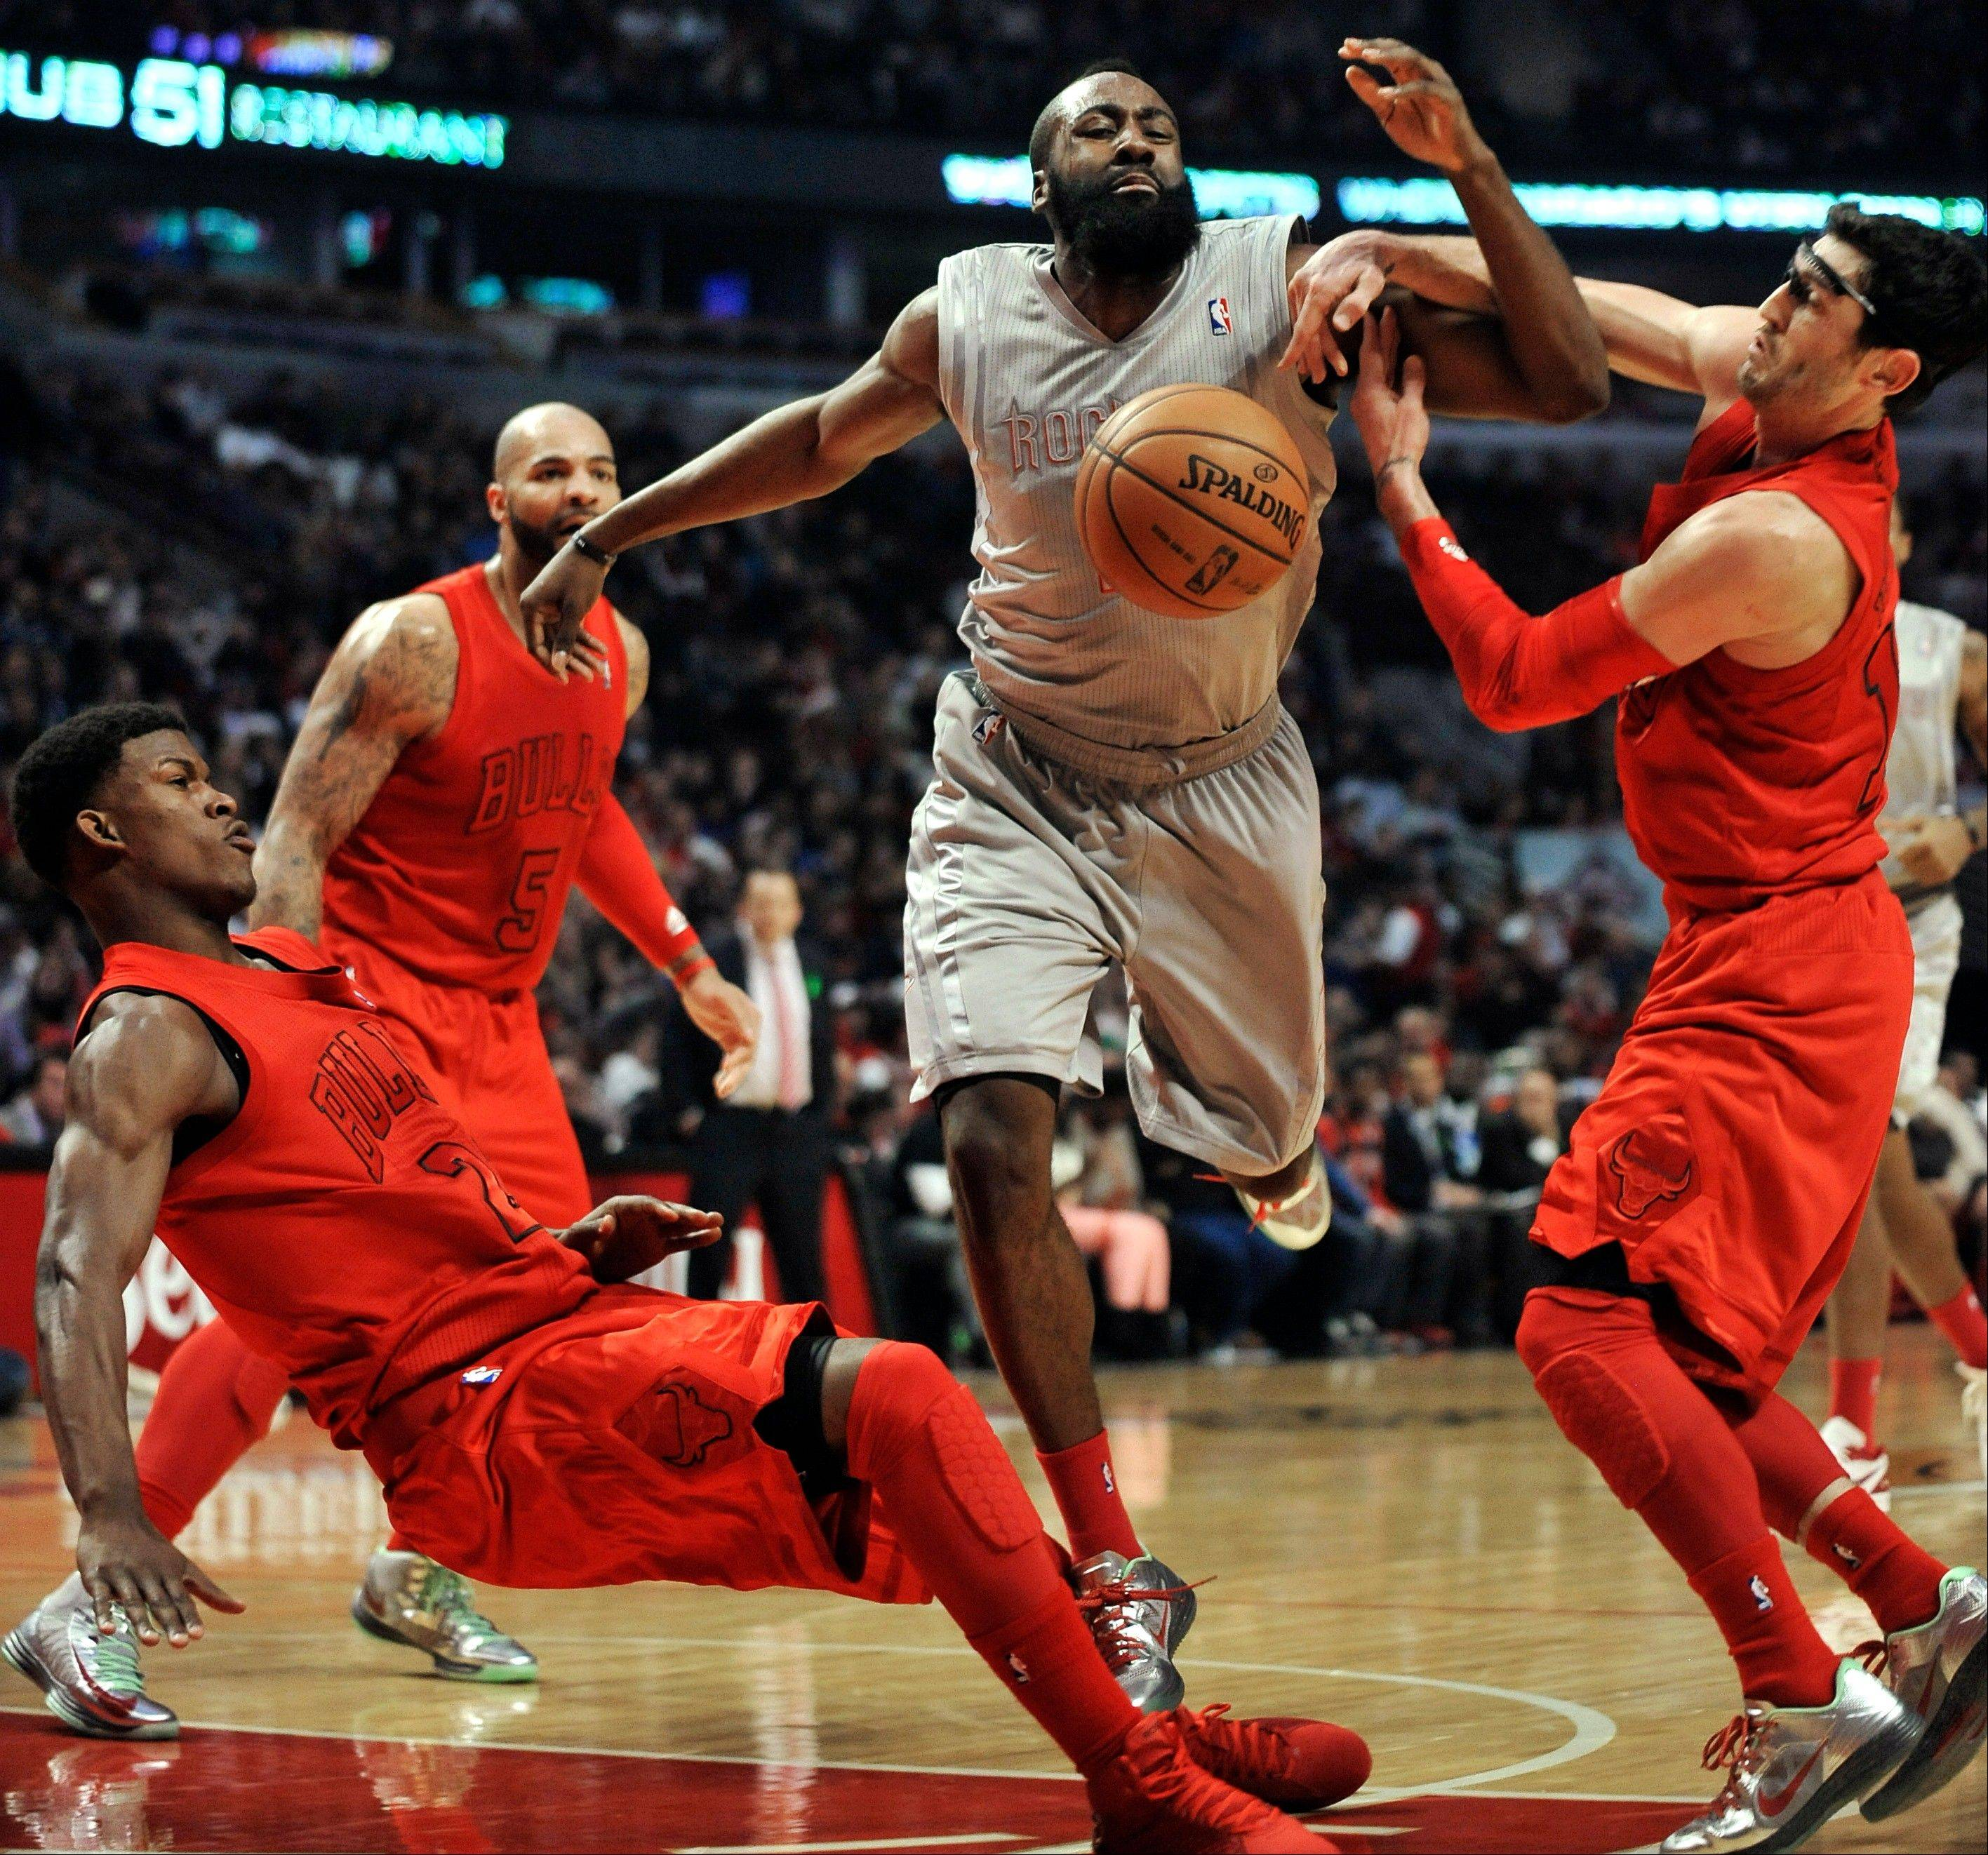 Houston Rockets' James Harden, center, battles Chicago Bulls' Kirk Hinrich, right, and Jimmy Butler, left, for a loose ball during the first quarter of an NBA basketball game in Chicago, Tuesday, Dec. 25, 2012. (AP Photo/Paul Beaty)